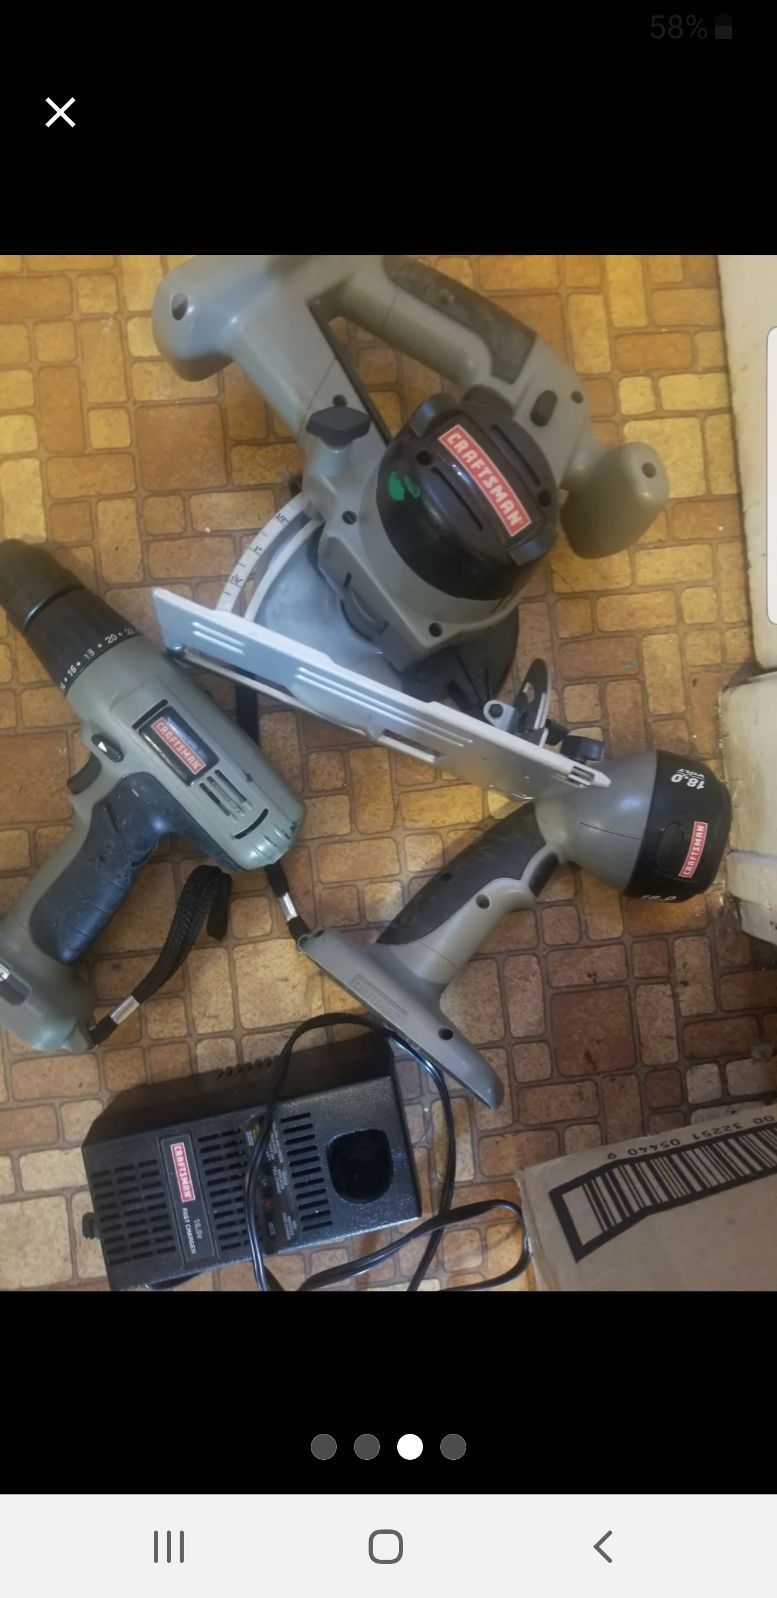 7 piece Craftsman tool sets as listed